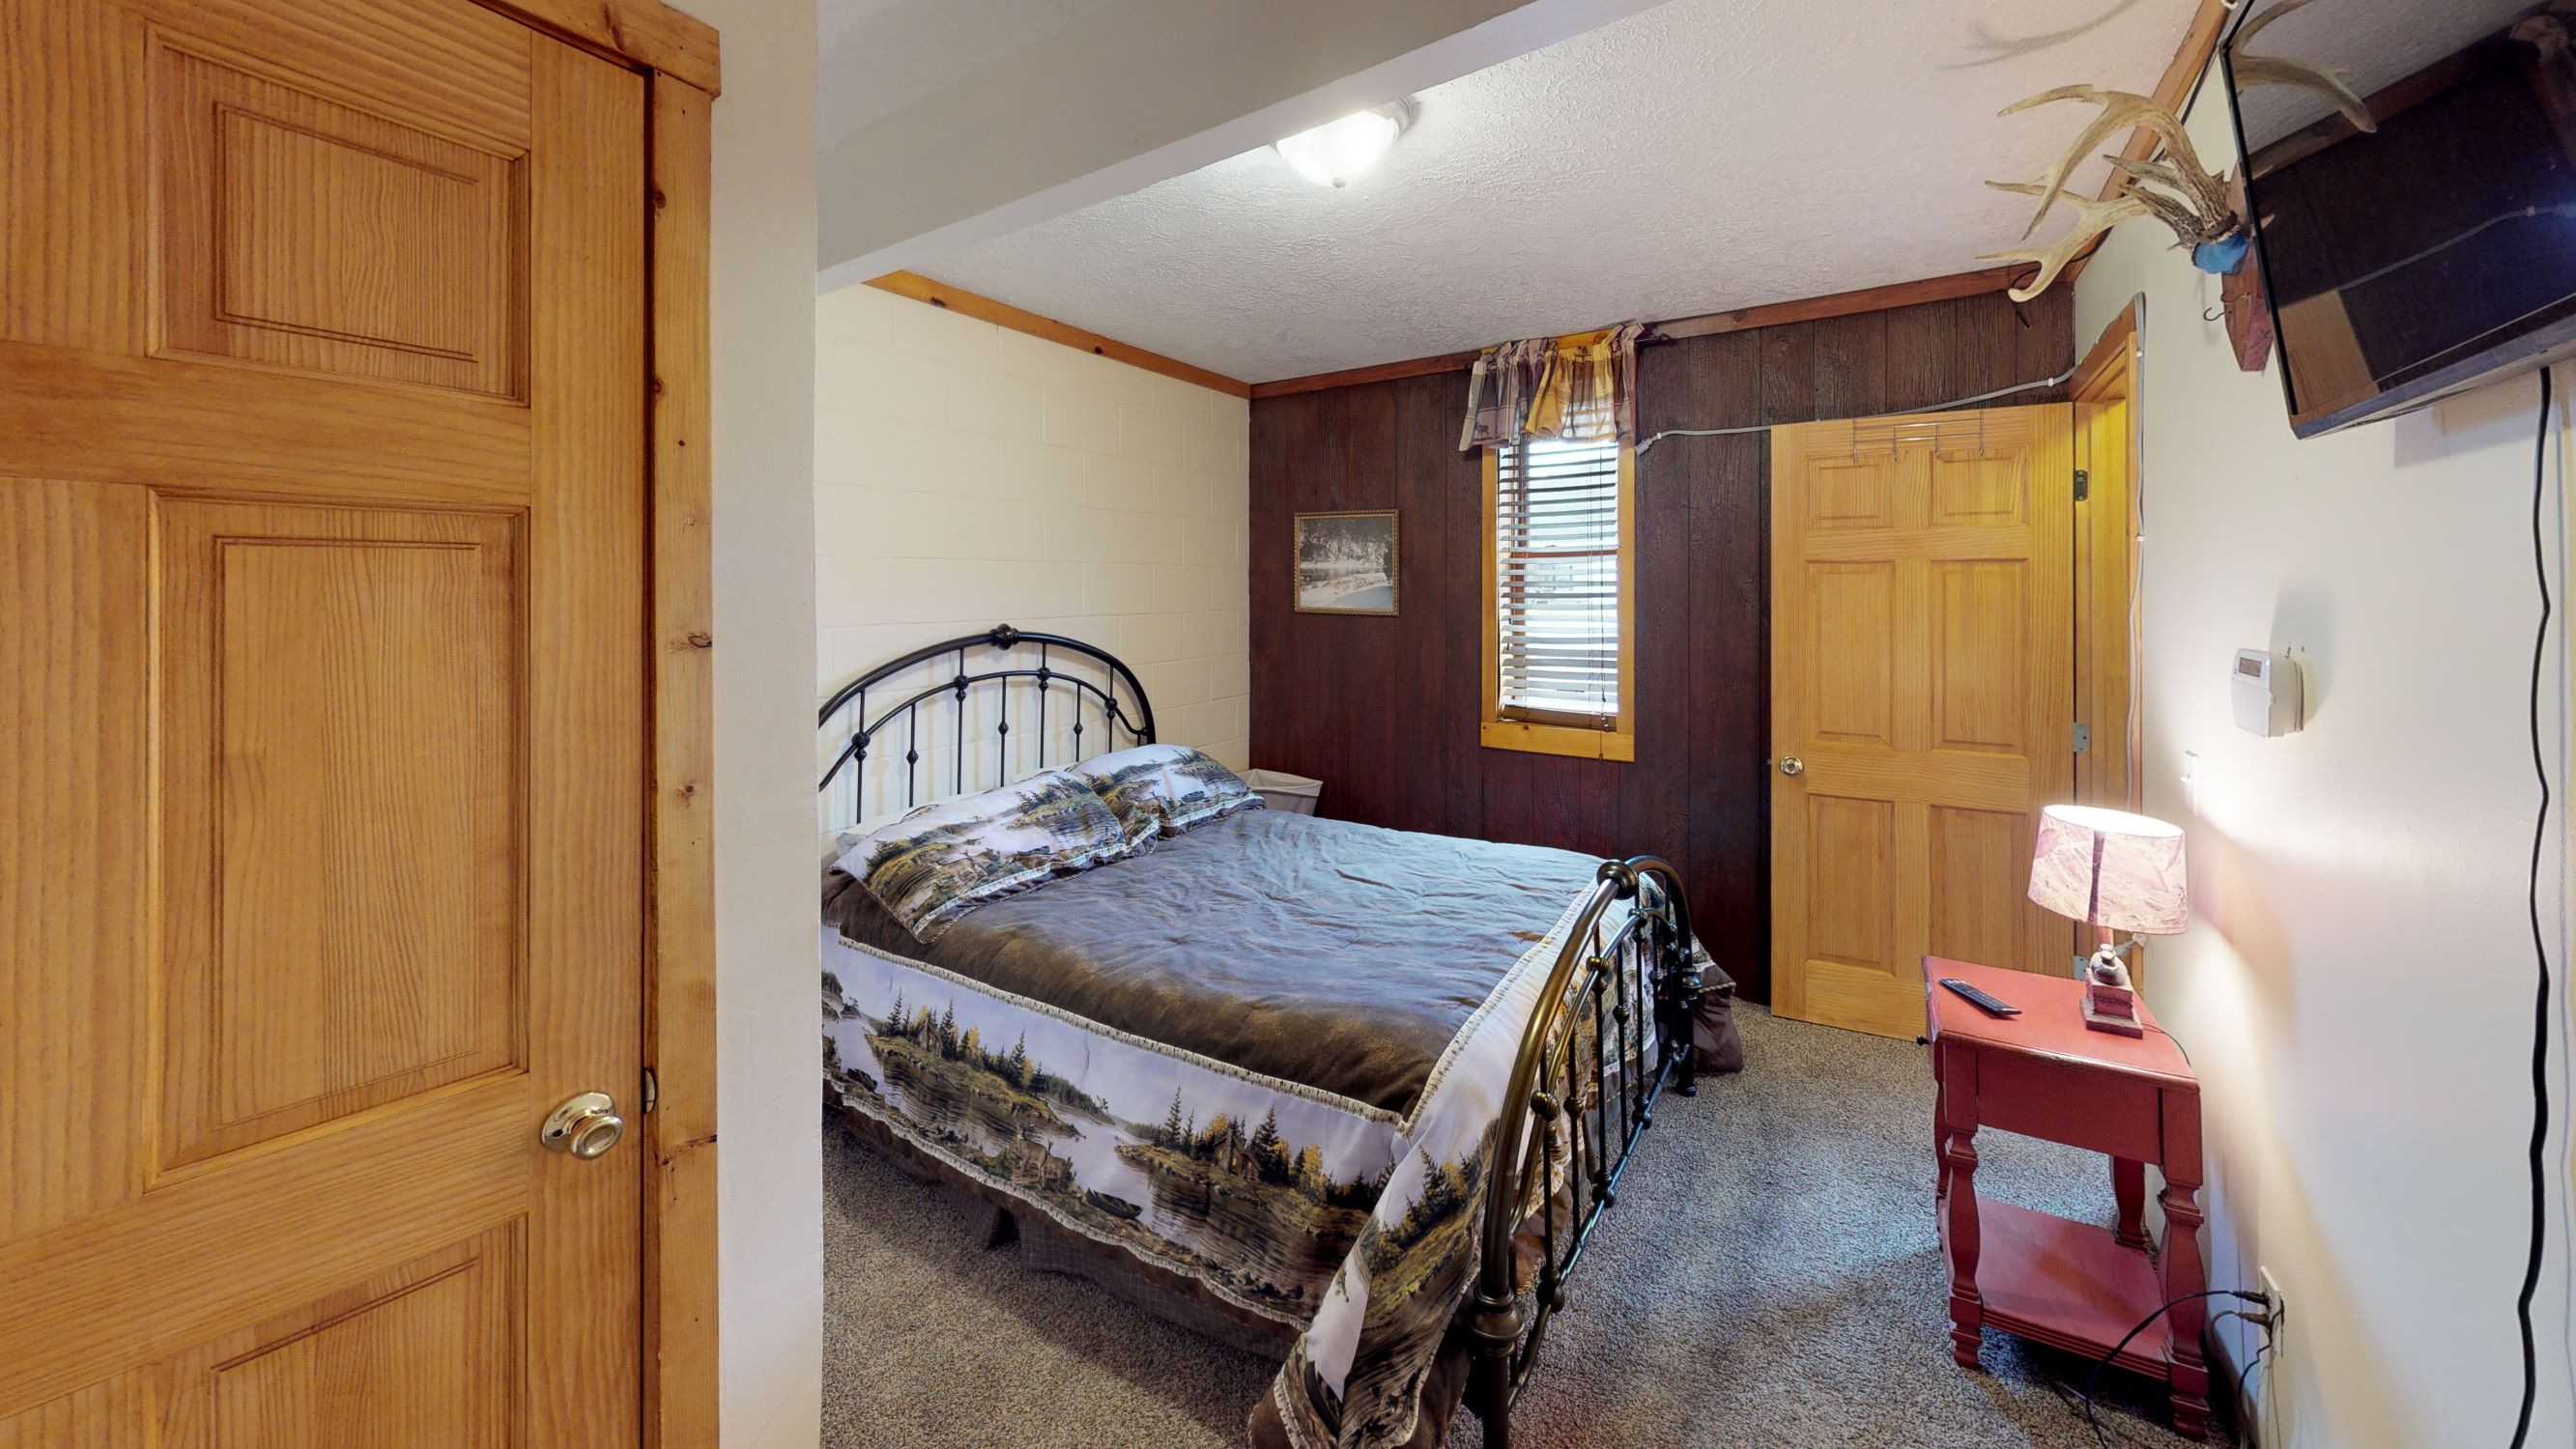 Sandy Run Bedroom 1 - Bedroom 1 is located on the lower level. Comfortably sleeps 2 guest with 1 Queen bed. Equipped with a flat screen TV. Laundry facilities are located in this room.